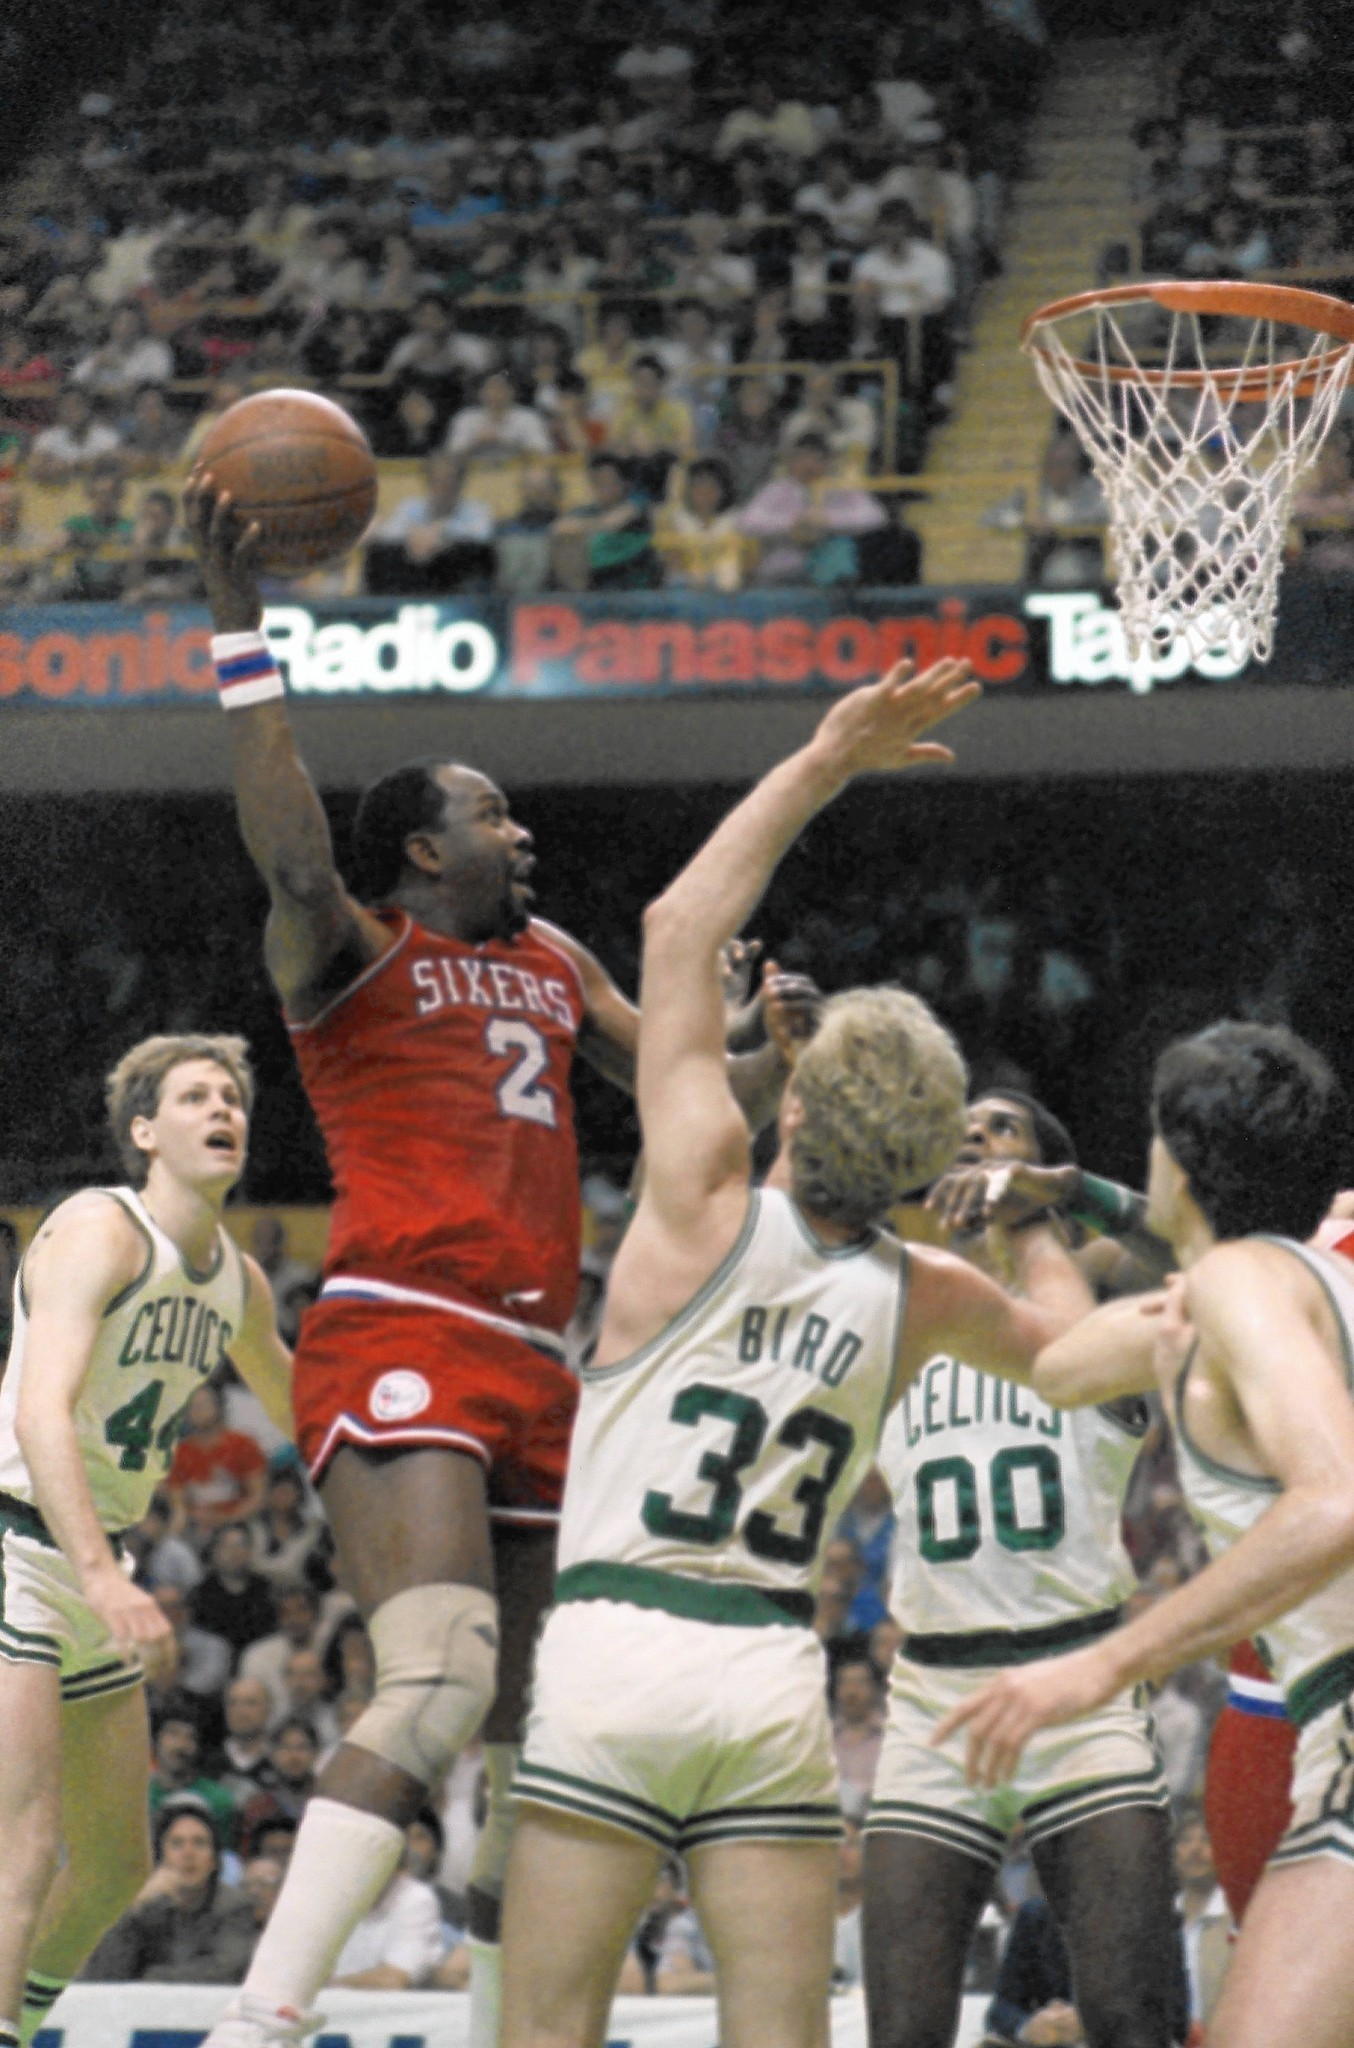 Moses Malone former NBA and Philadelphia 76ers great s at 60